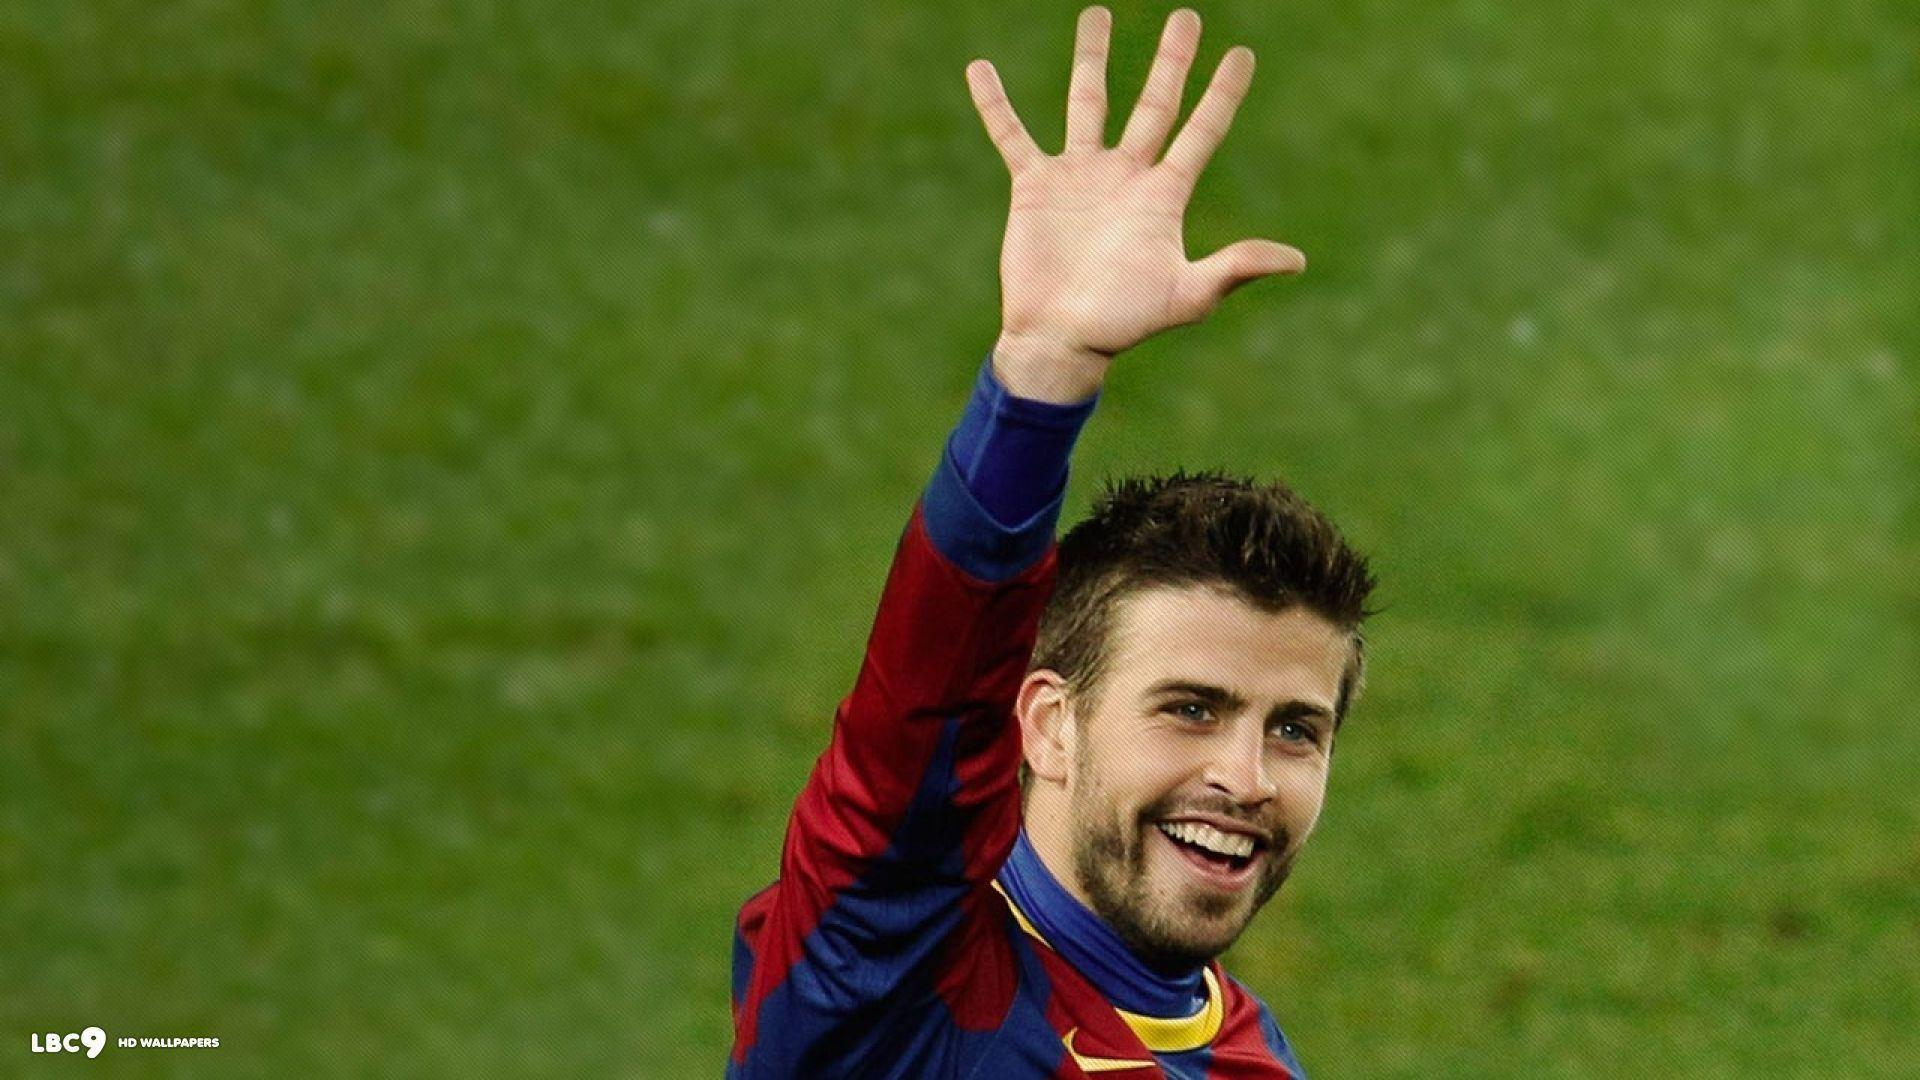 gerard pique wallpapers 4/17